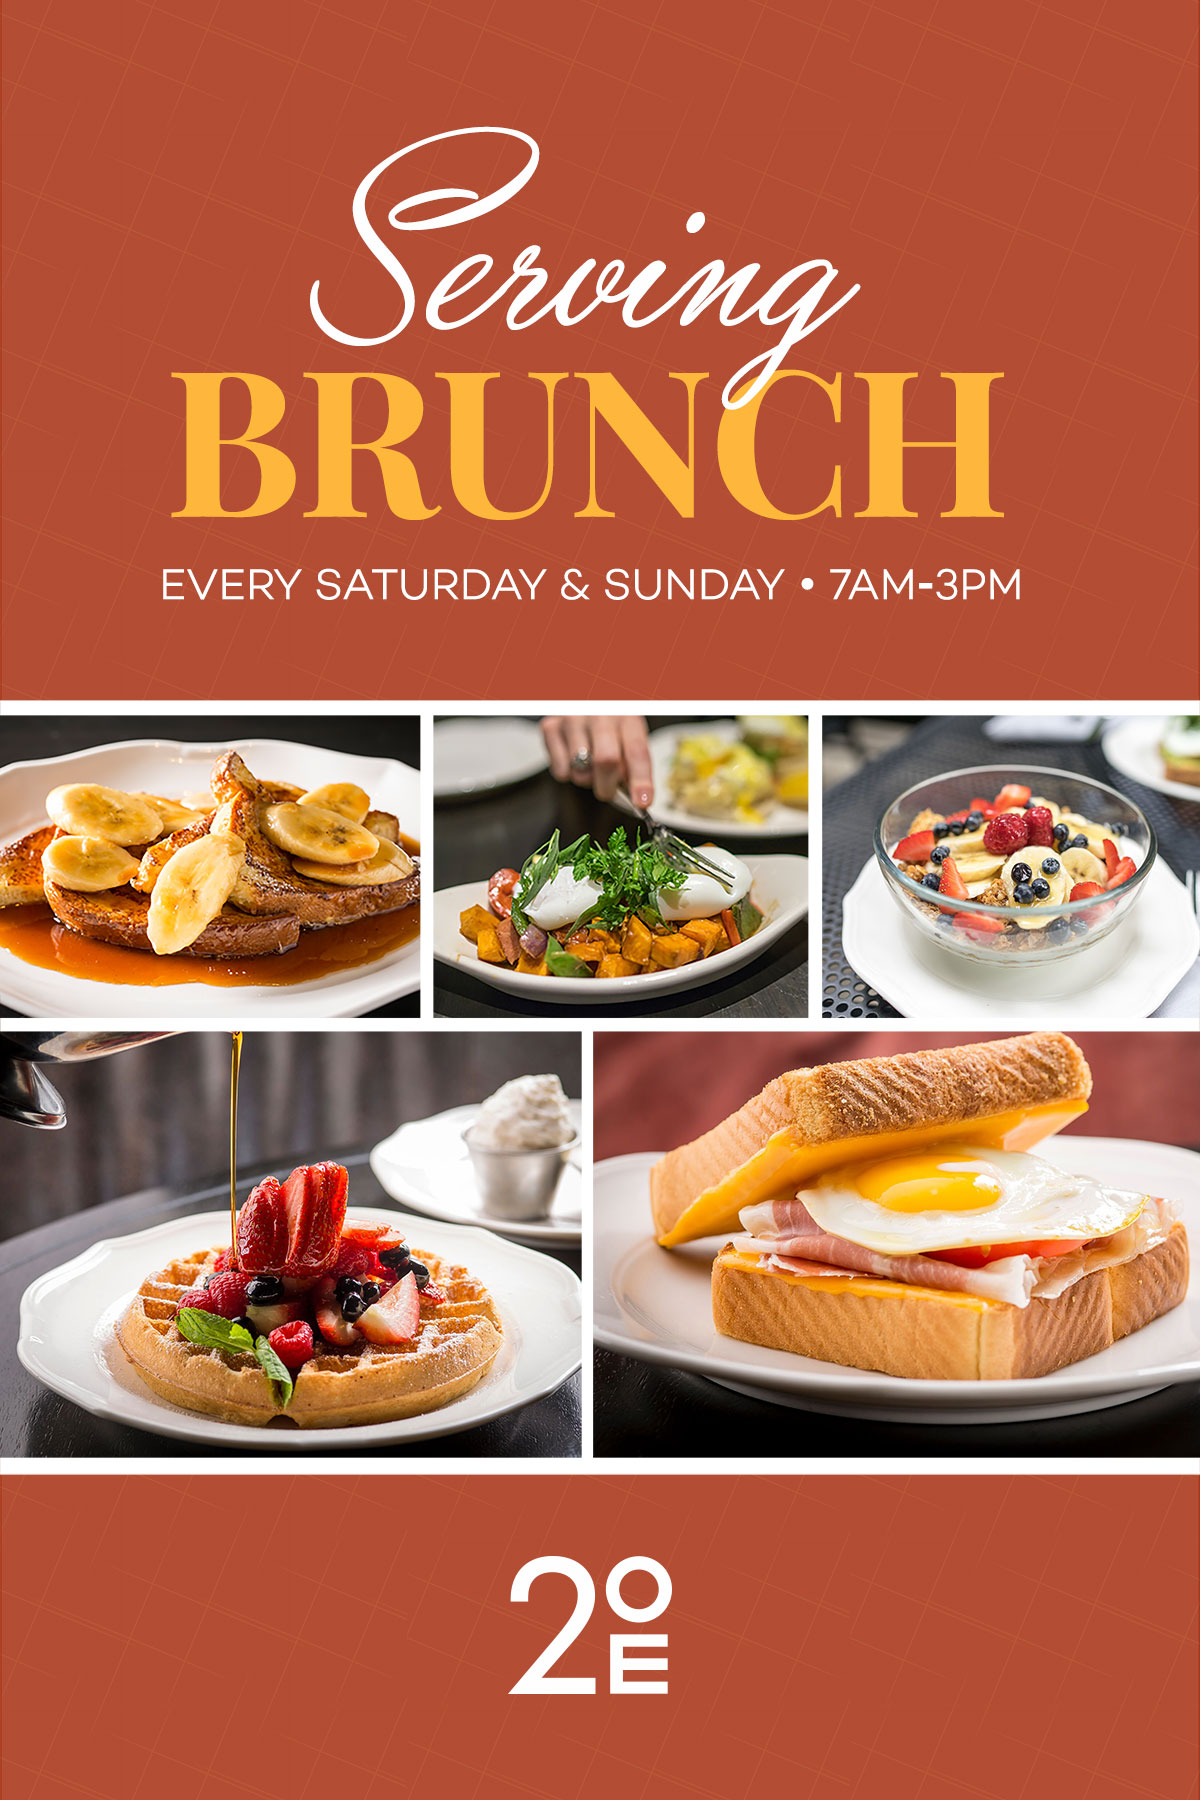 Join us for Brunch in the Gold Coast! - Serving an a la carte brunch every Saturday & Sunday from 7am - 3pm